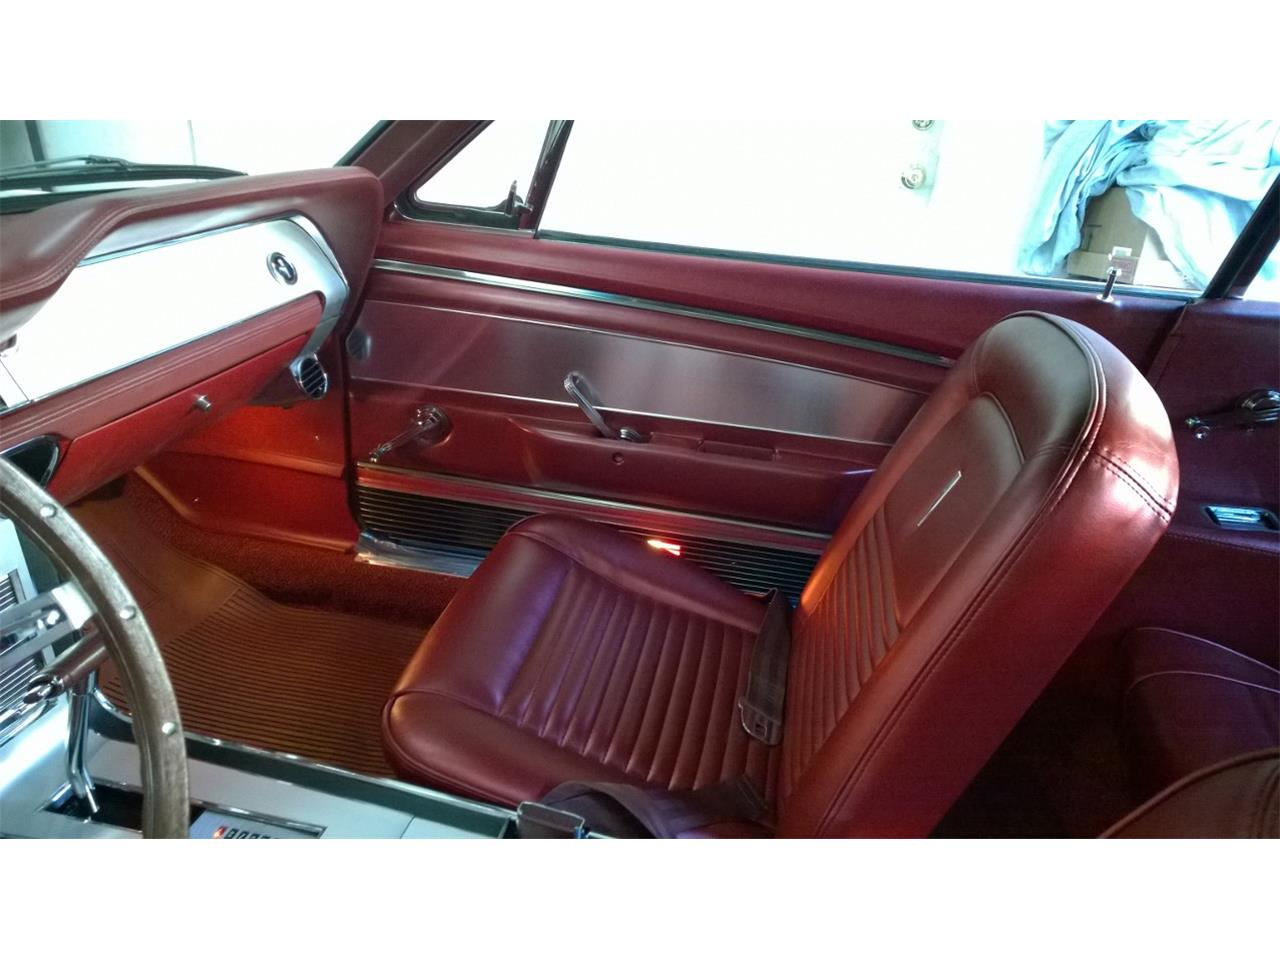 Large Picture of '67 Ford Mustang GT - $120,000.00 Offered by a Private Seller - QADD